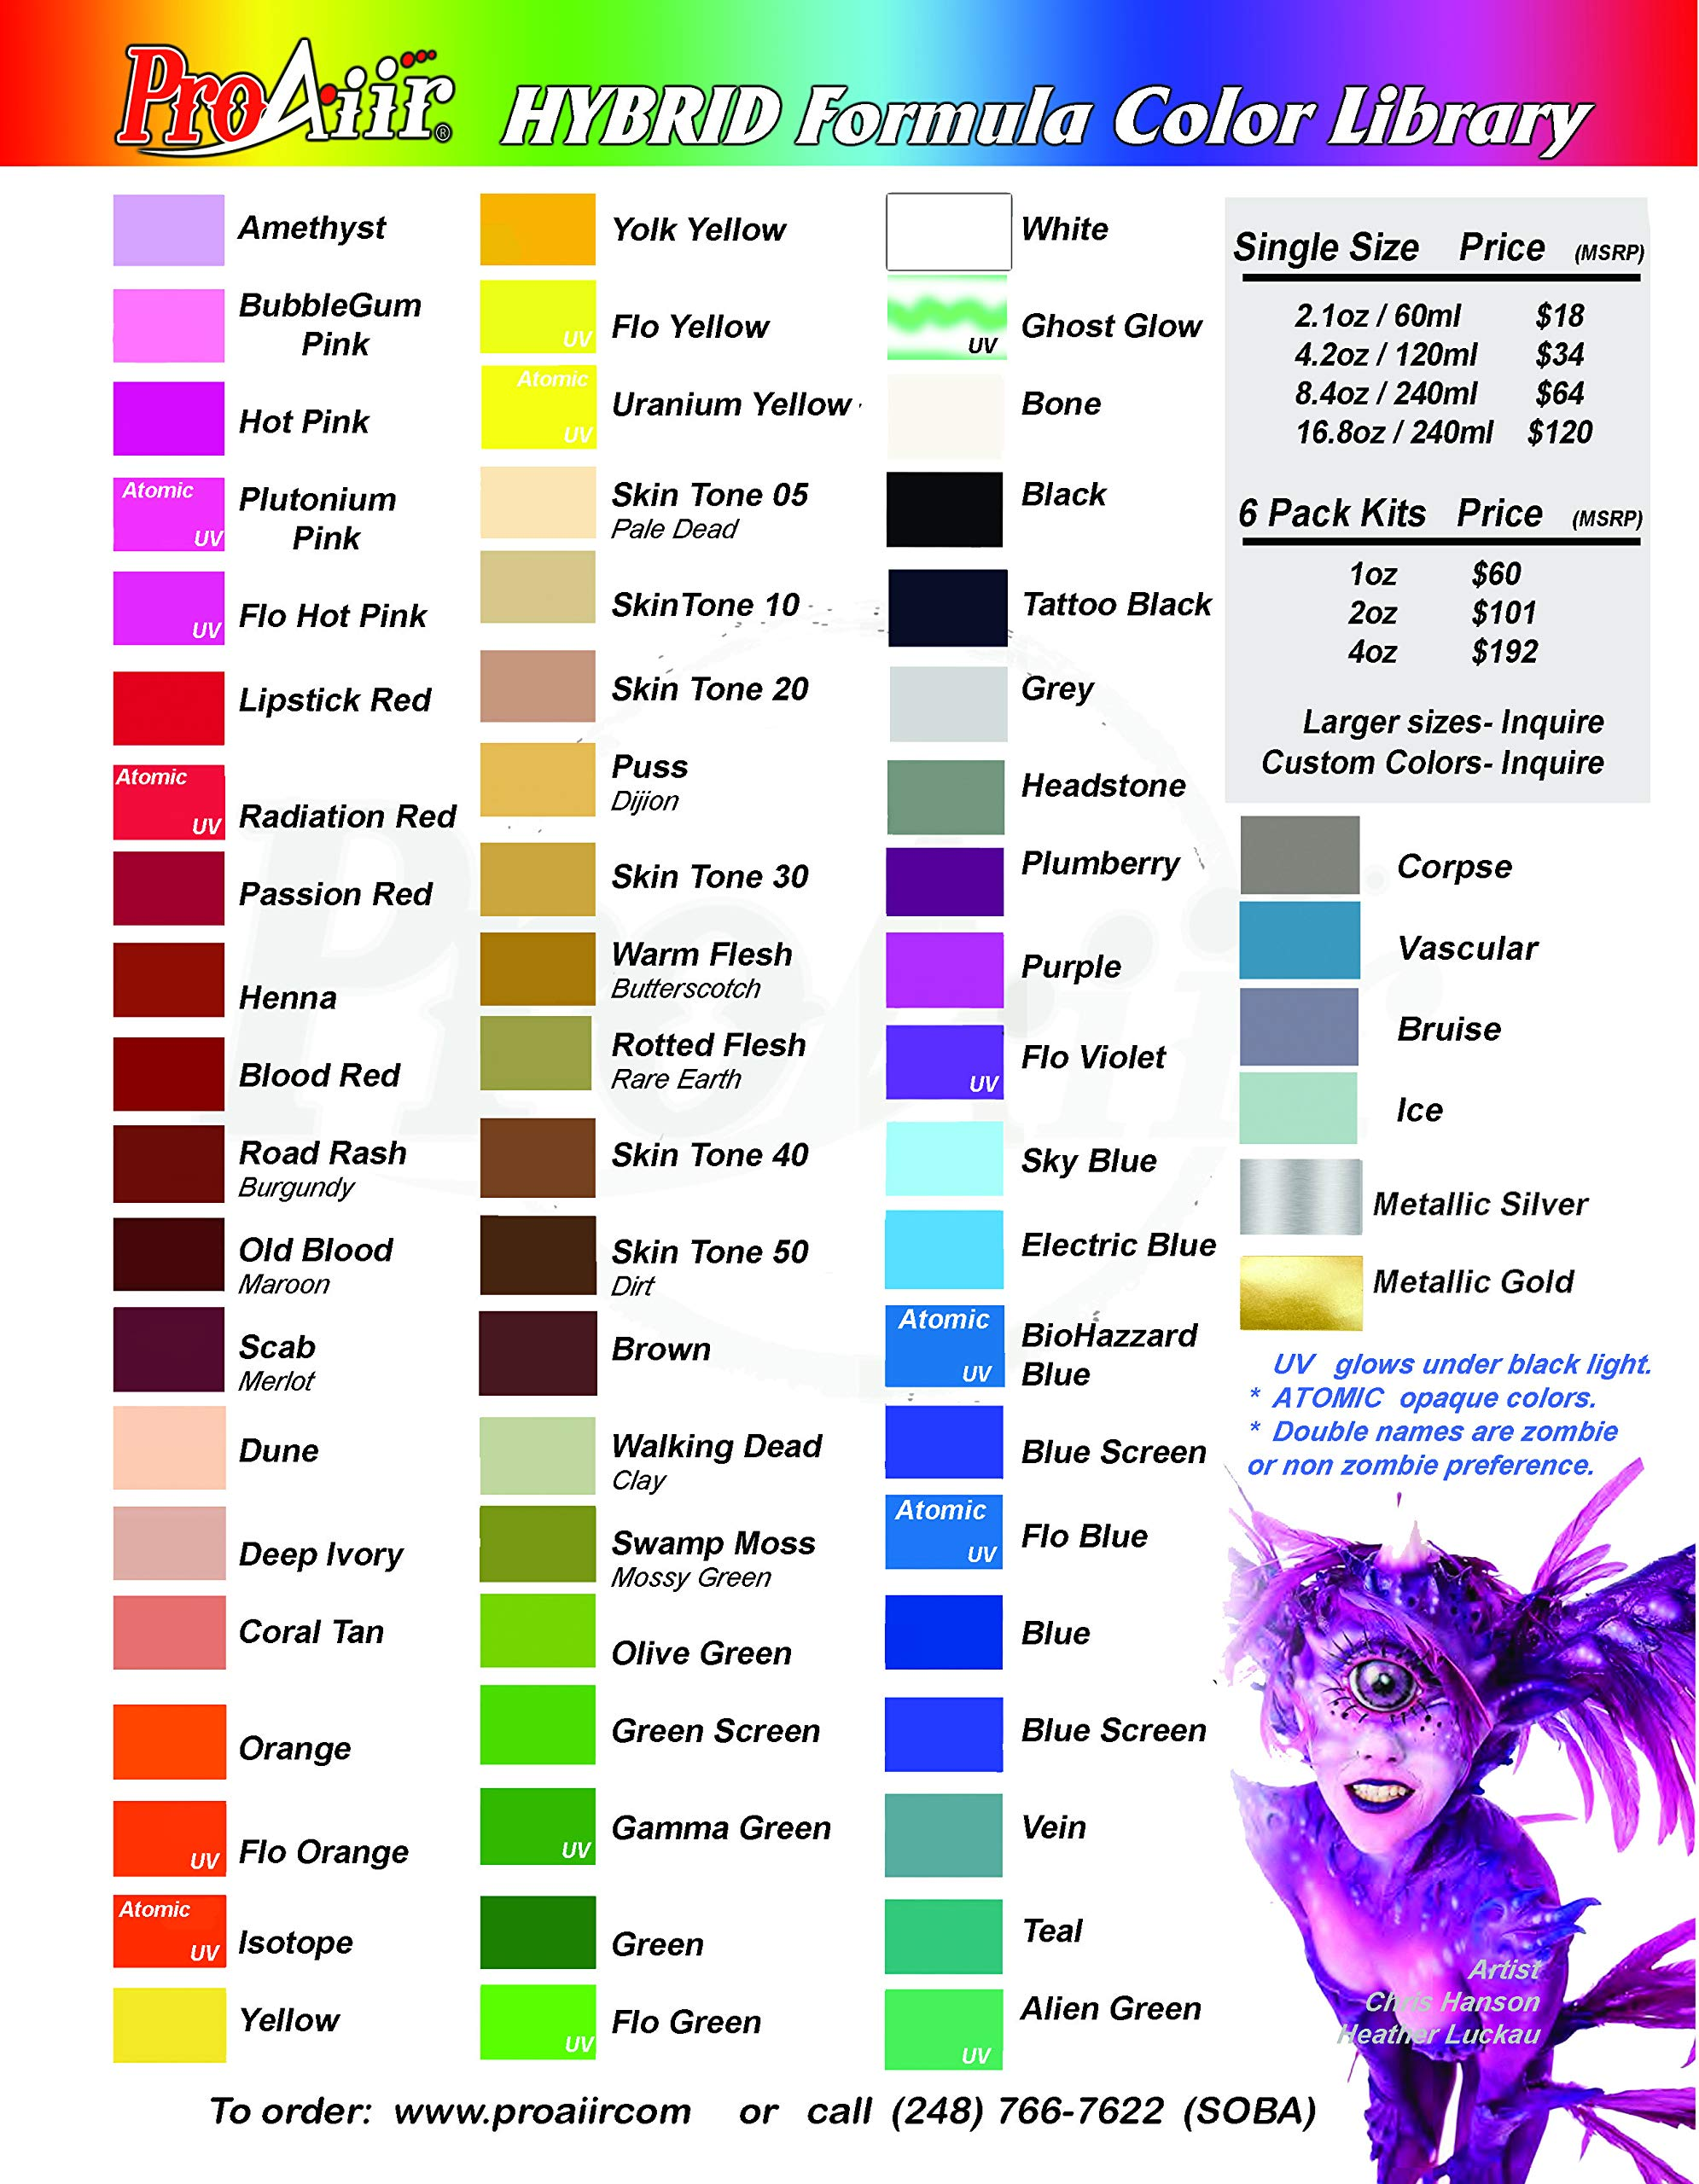 Face Painting Makeup - ProAiir Waterproof Makeup - Third Set of 6 Ghoulish Zombie Colors - 1 oz (30ml) by ShowOffs Body Art (Image #2)